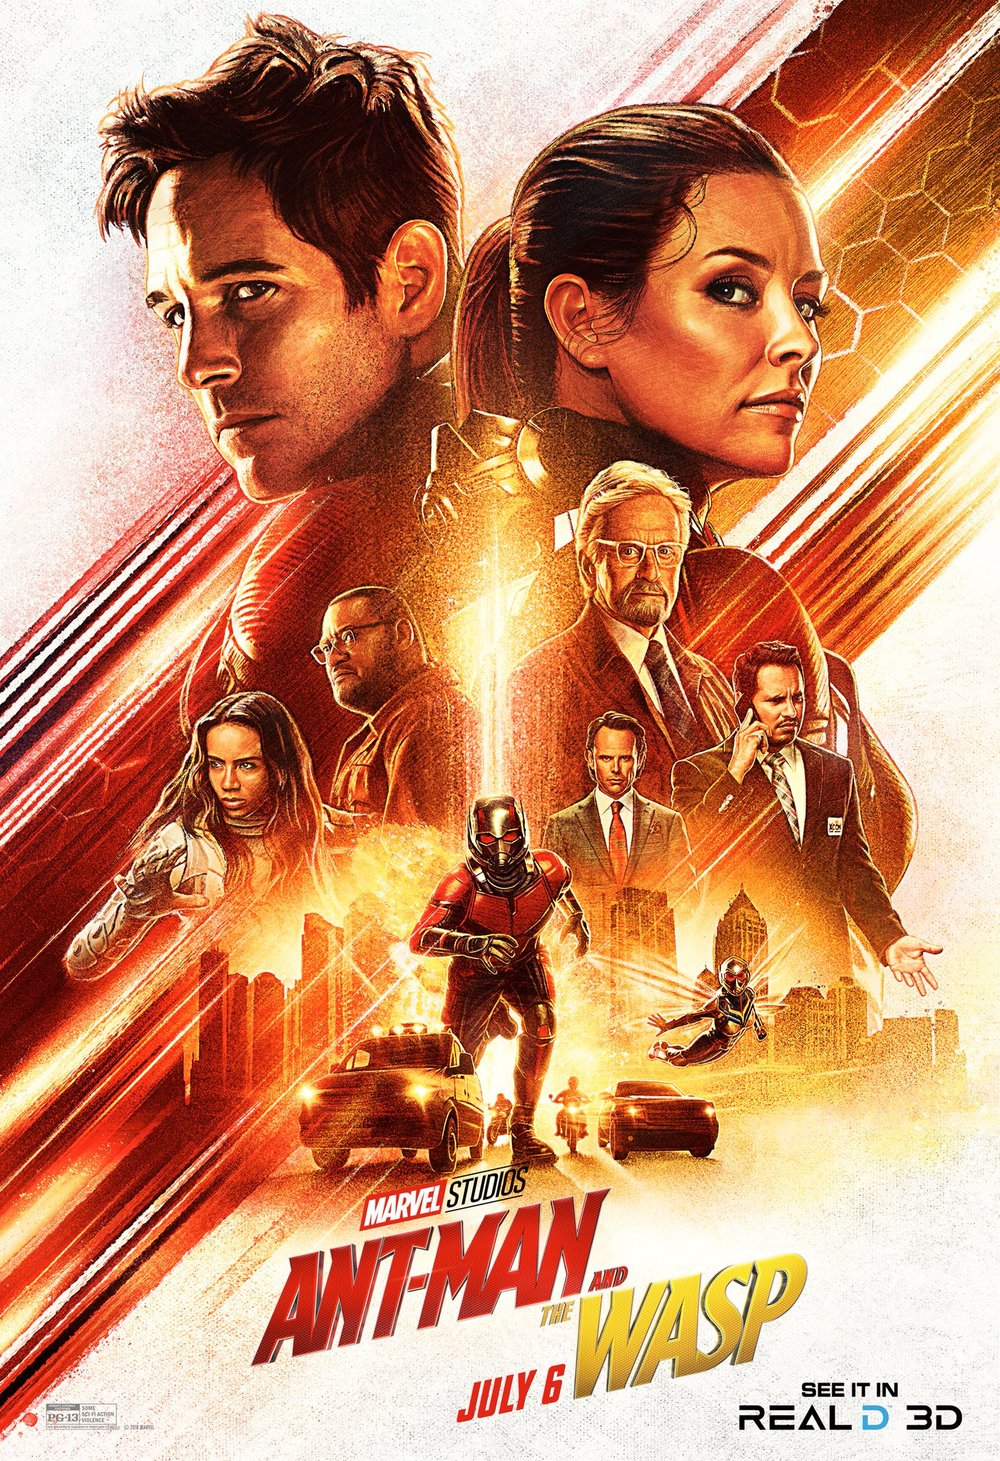 enjoy-the-entertaining-final-trailer-for-ant-man-and-the-wasp